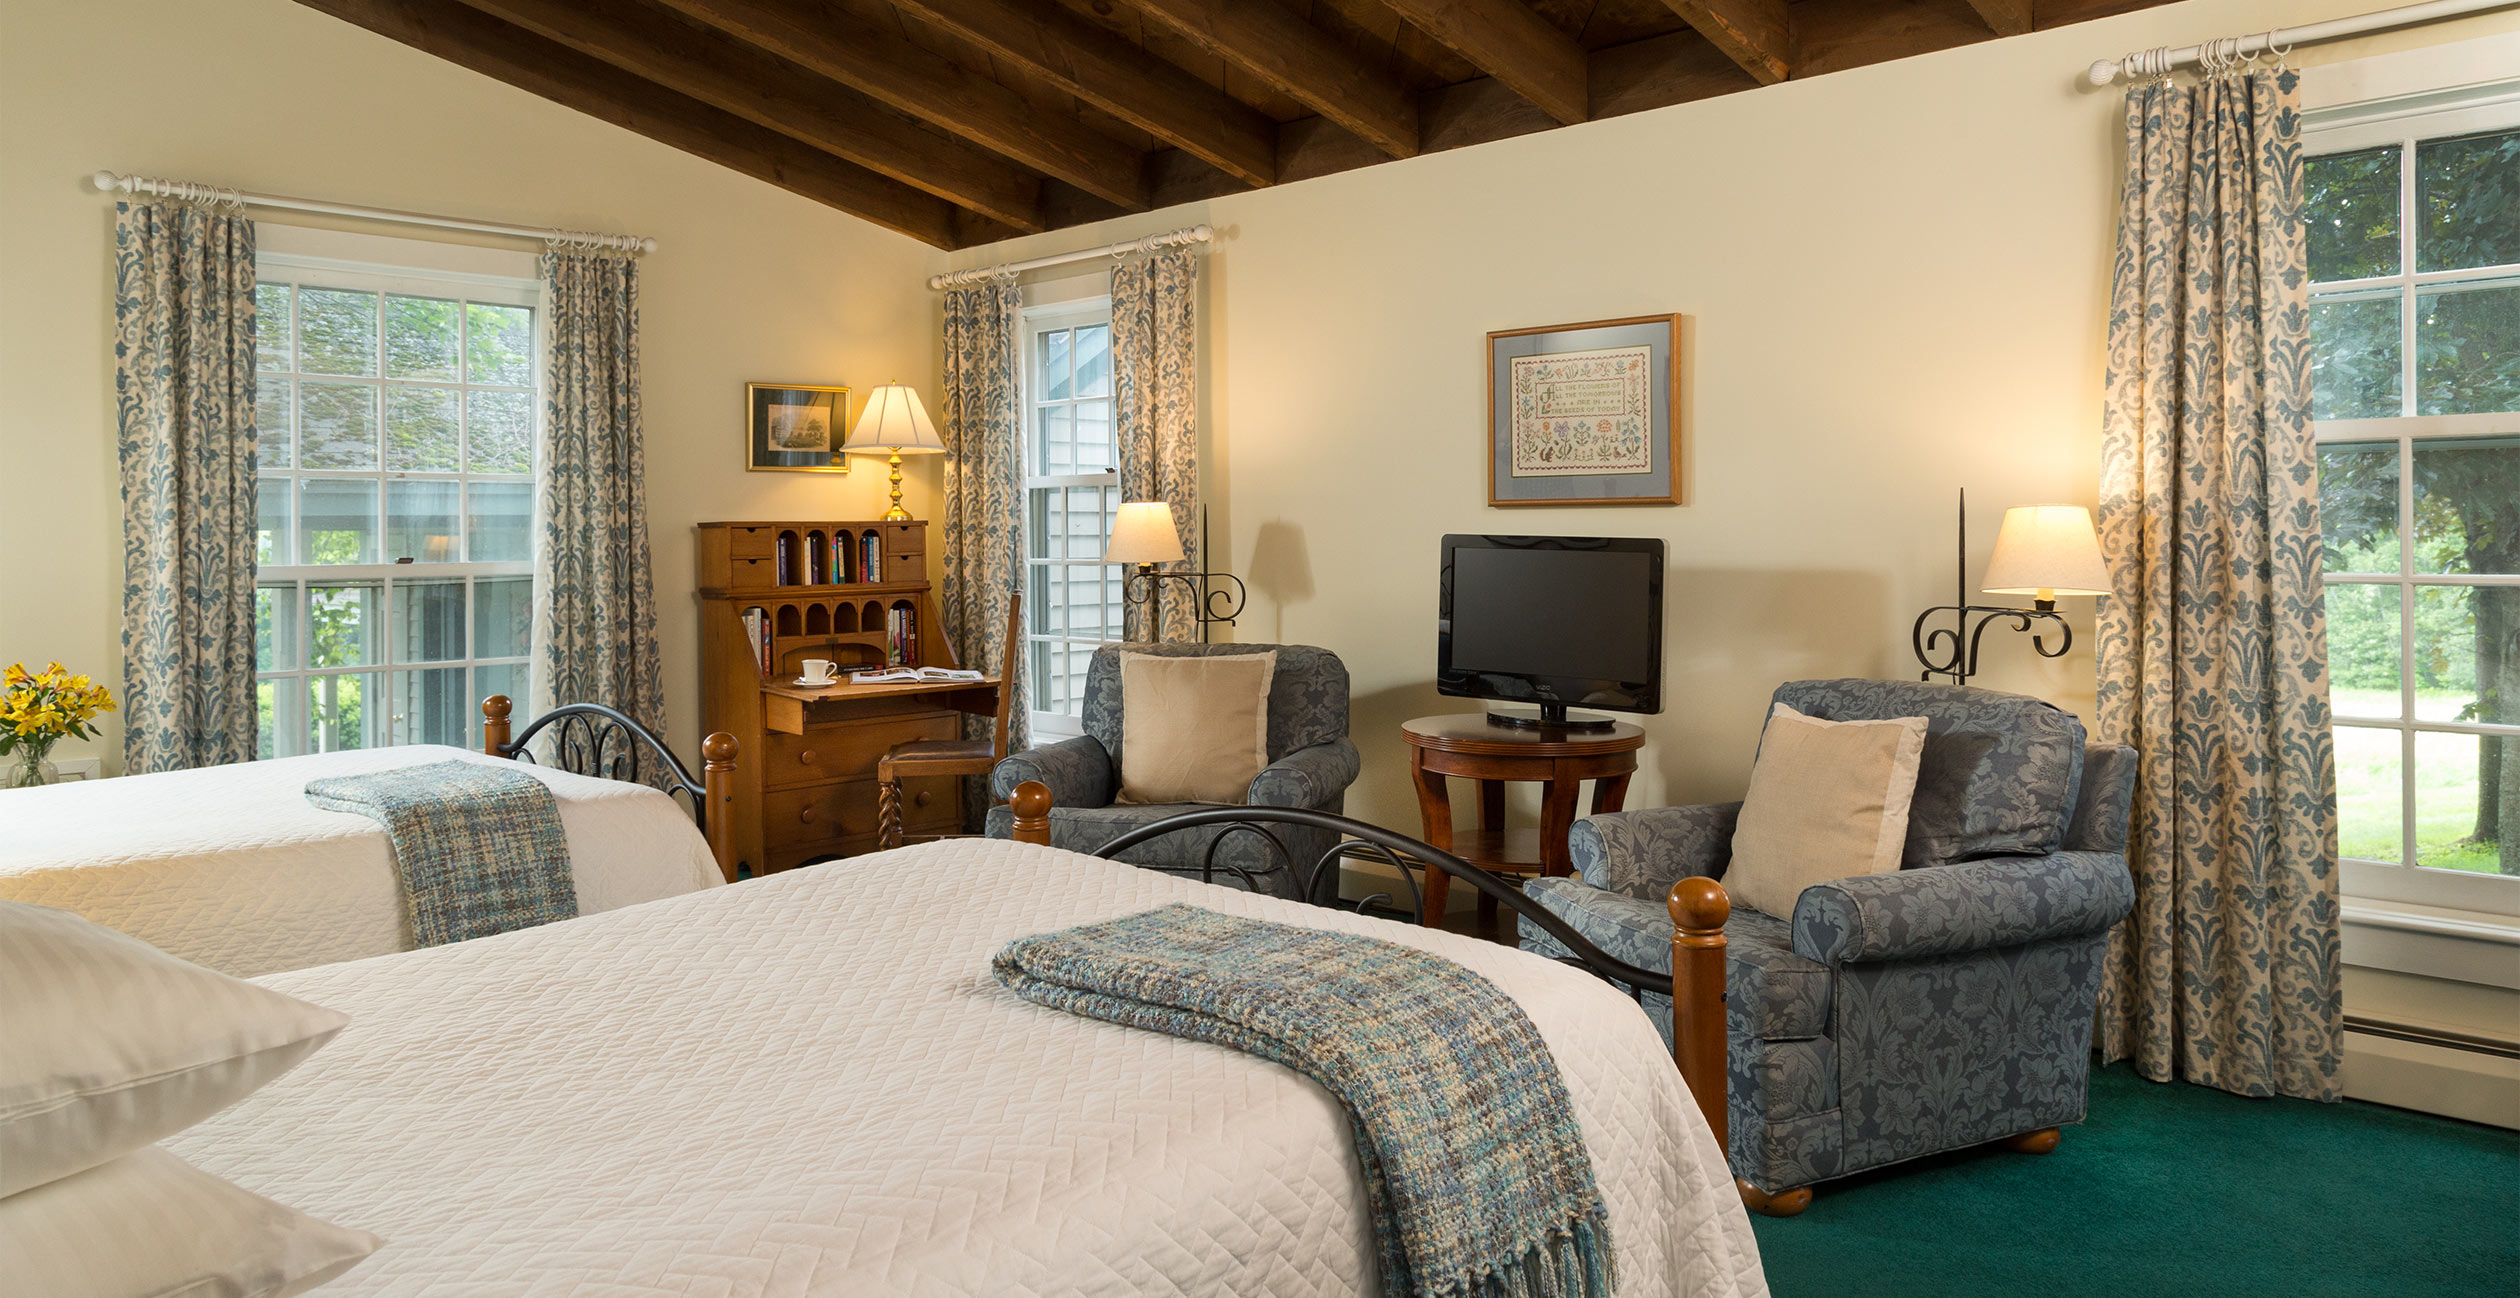 Two Beds in Room 13 with Desk and Chairs